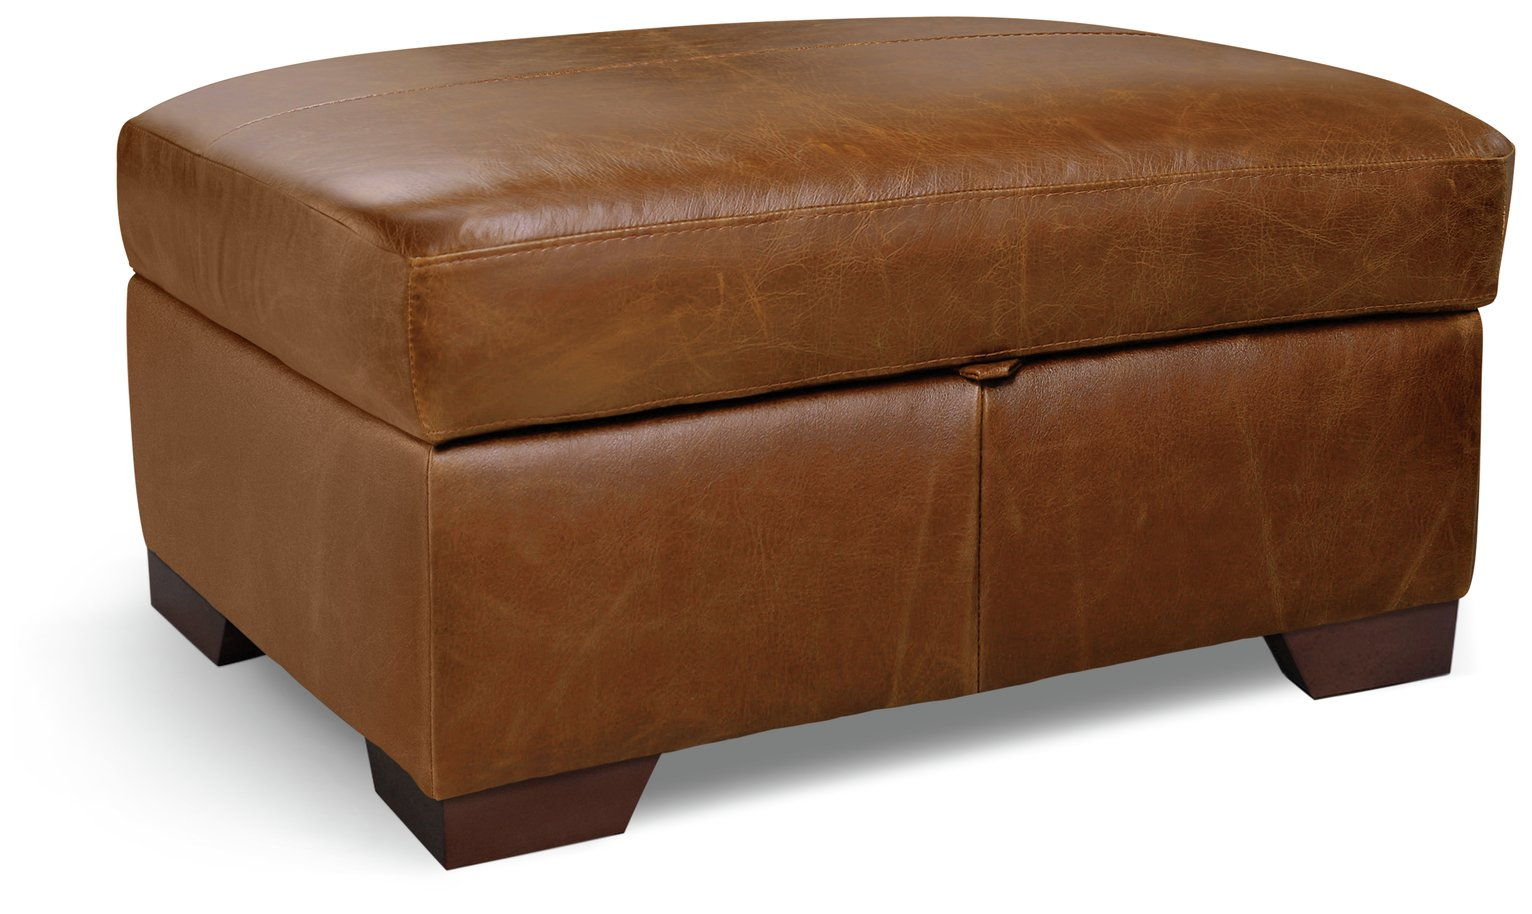 Heart of House - Eton - Leather Footstool - Tan